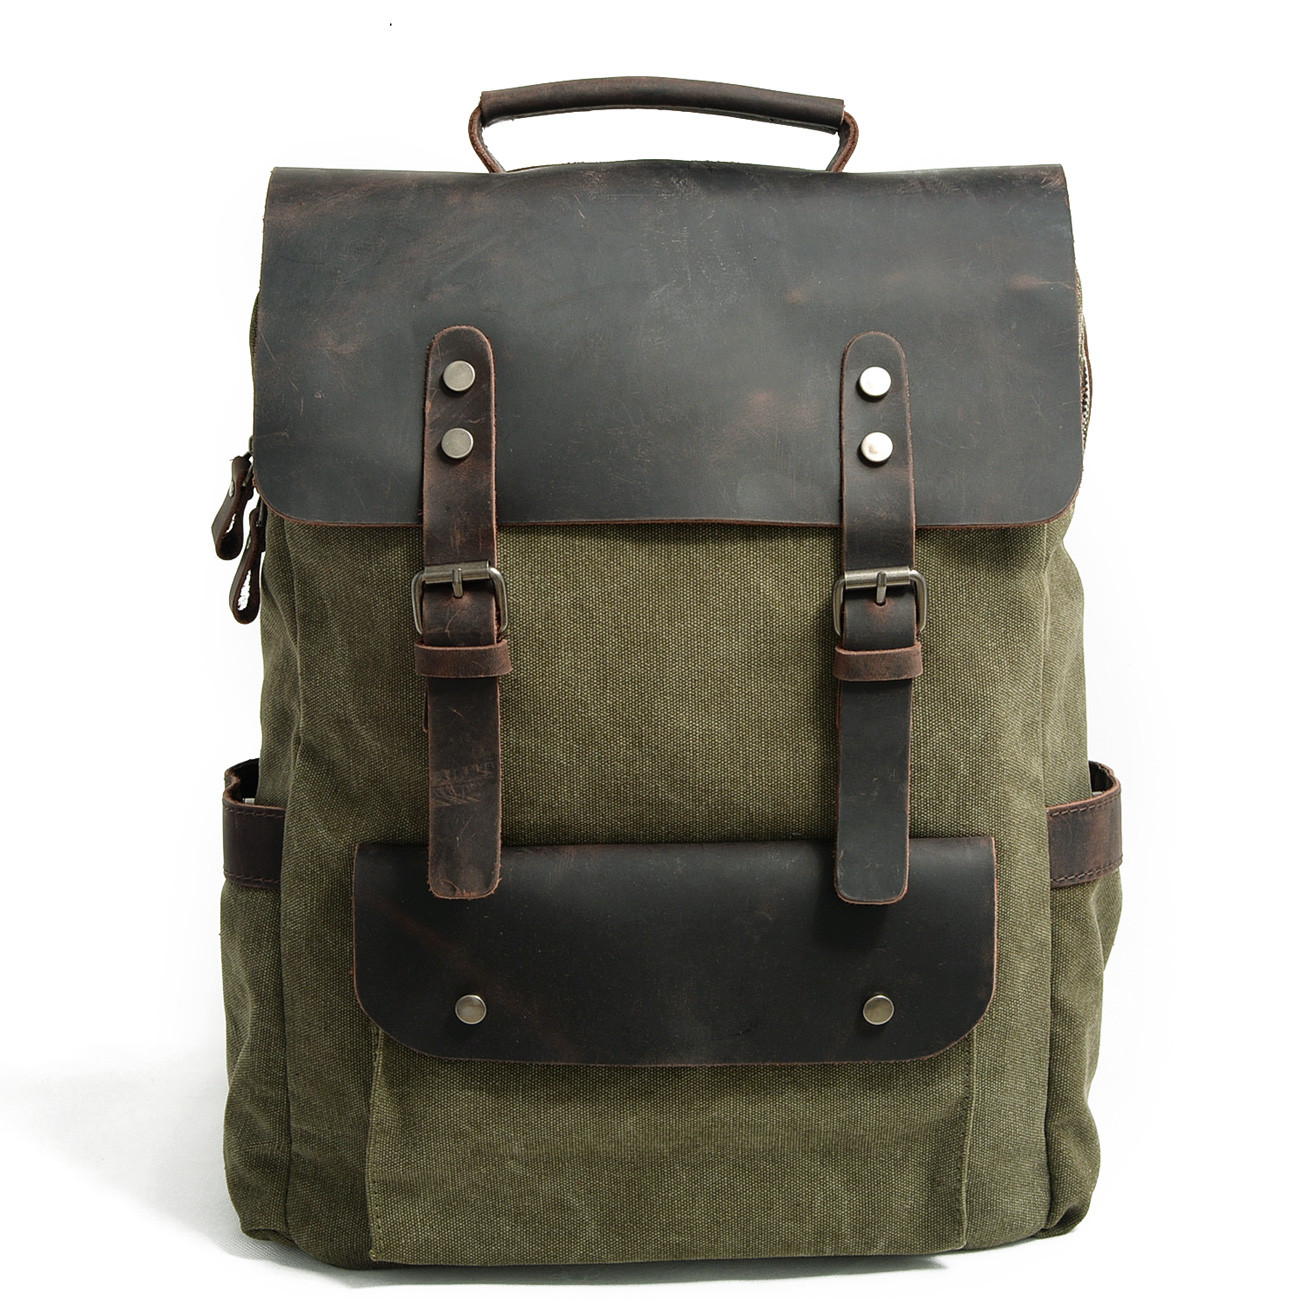 624745f4a3 China leather canvas backpack wholesale 🇨🇳 - Alibaba